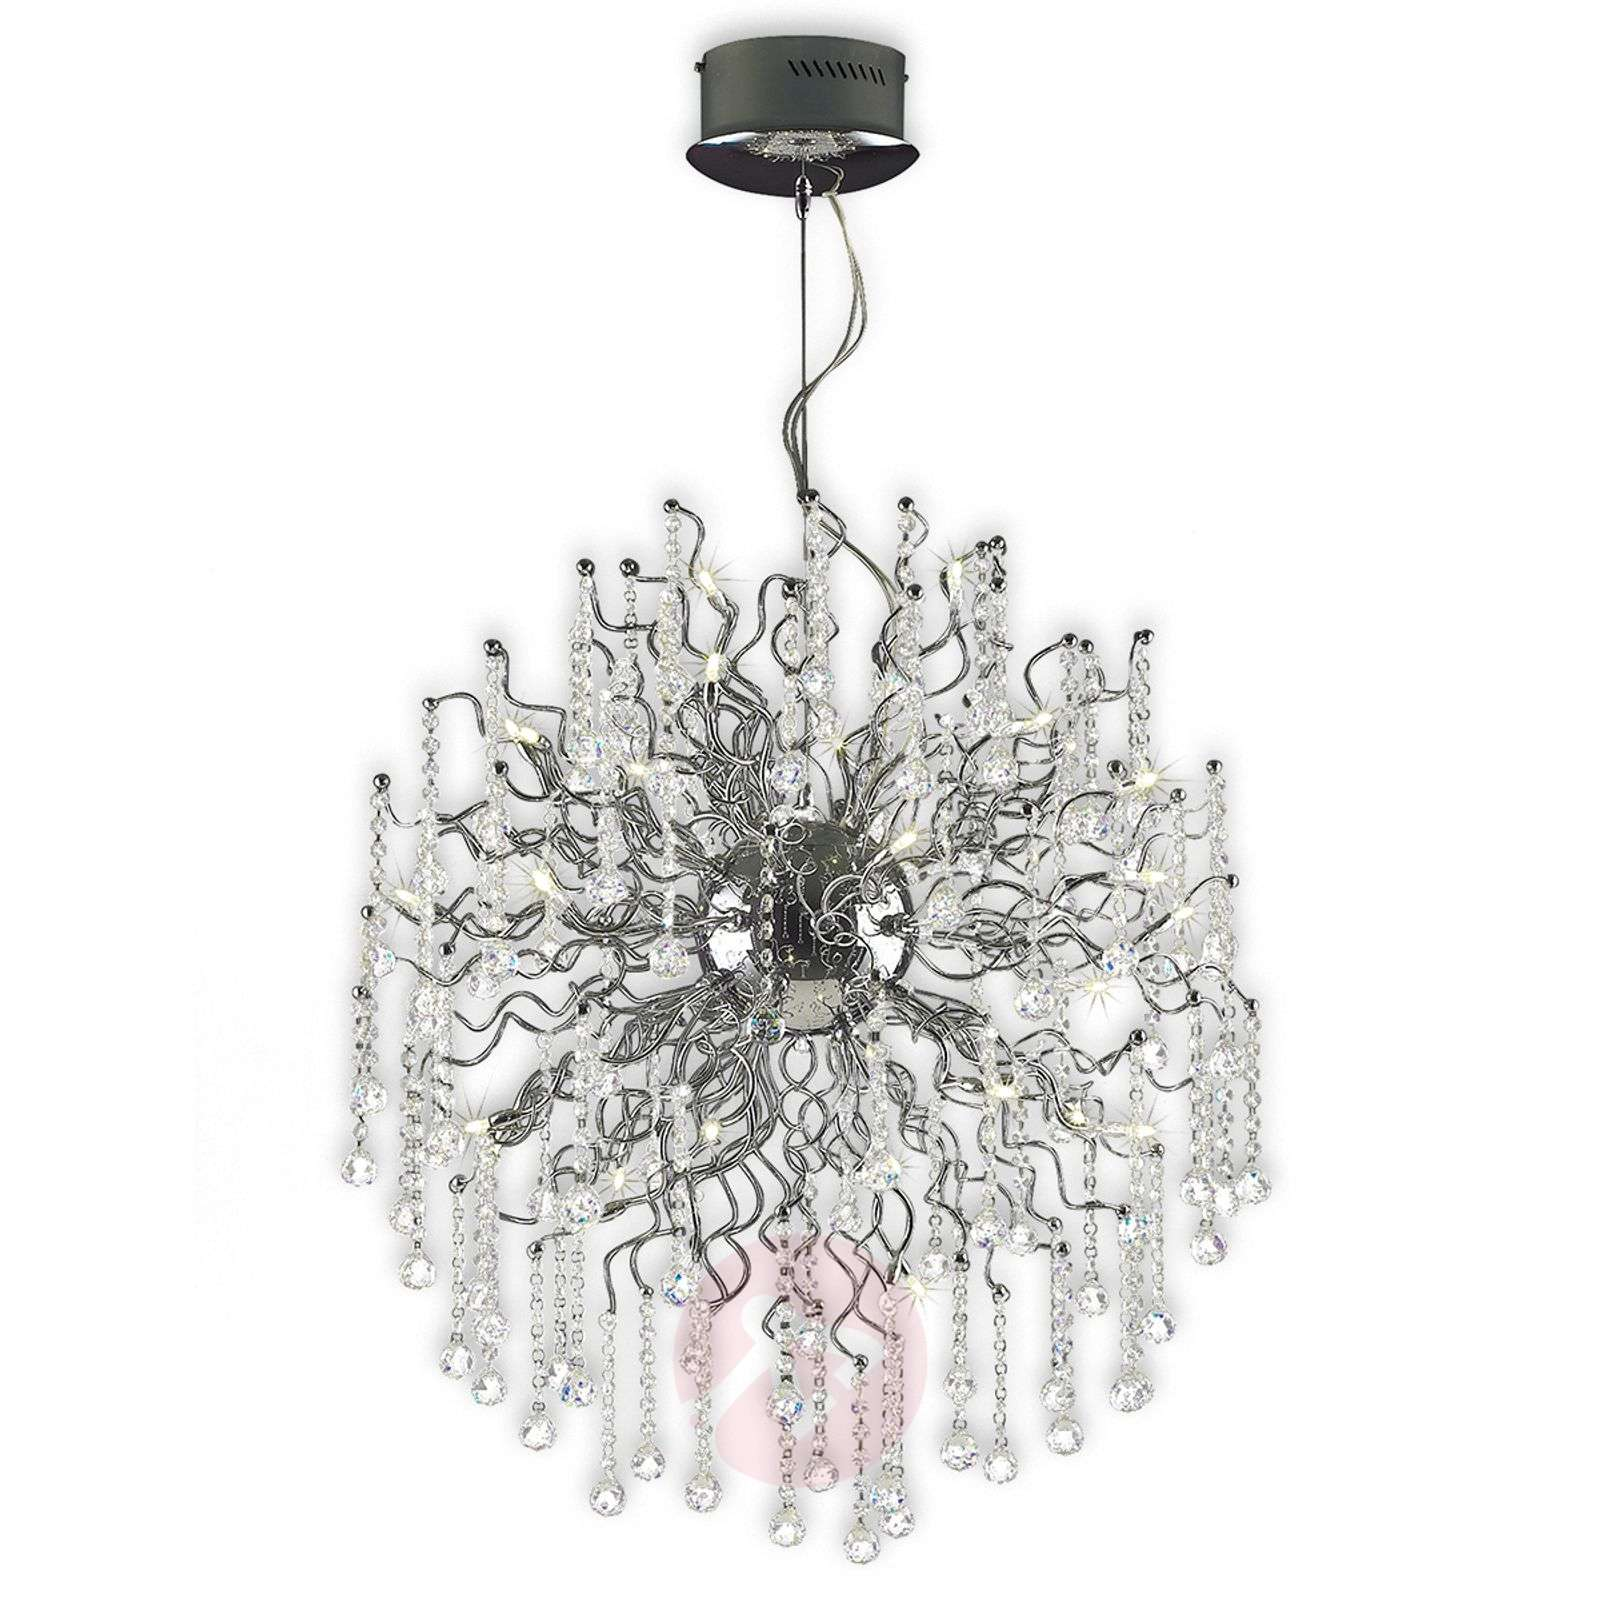 decorative hanging light nash xl with adornment lights ie